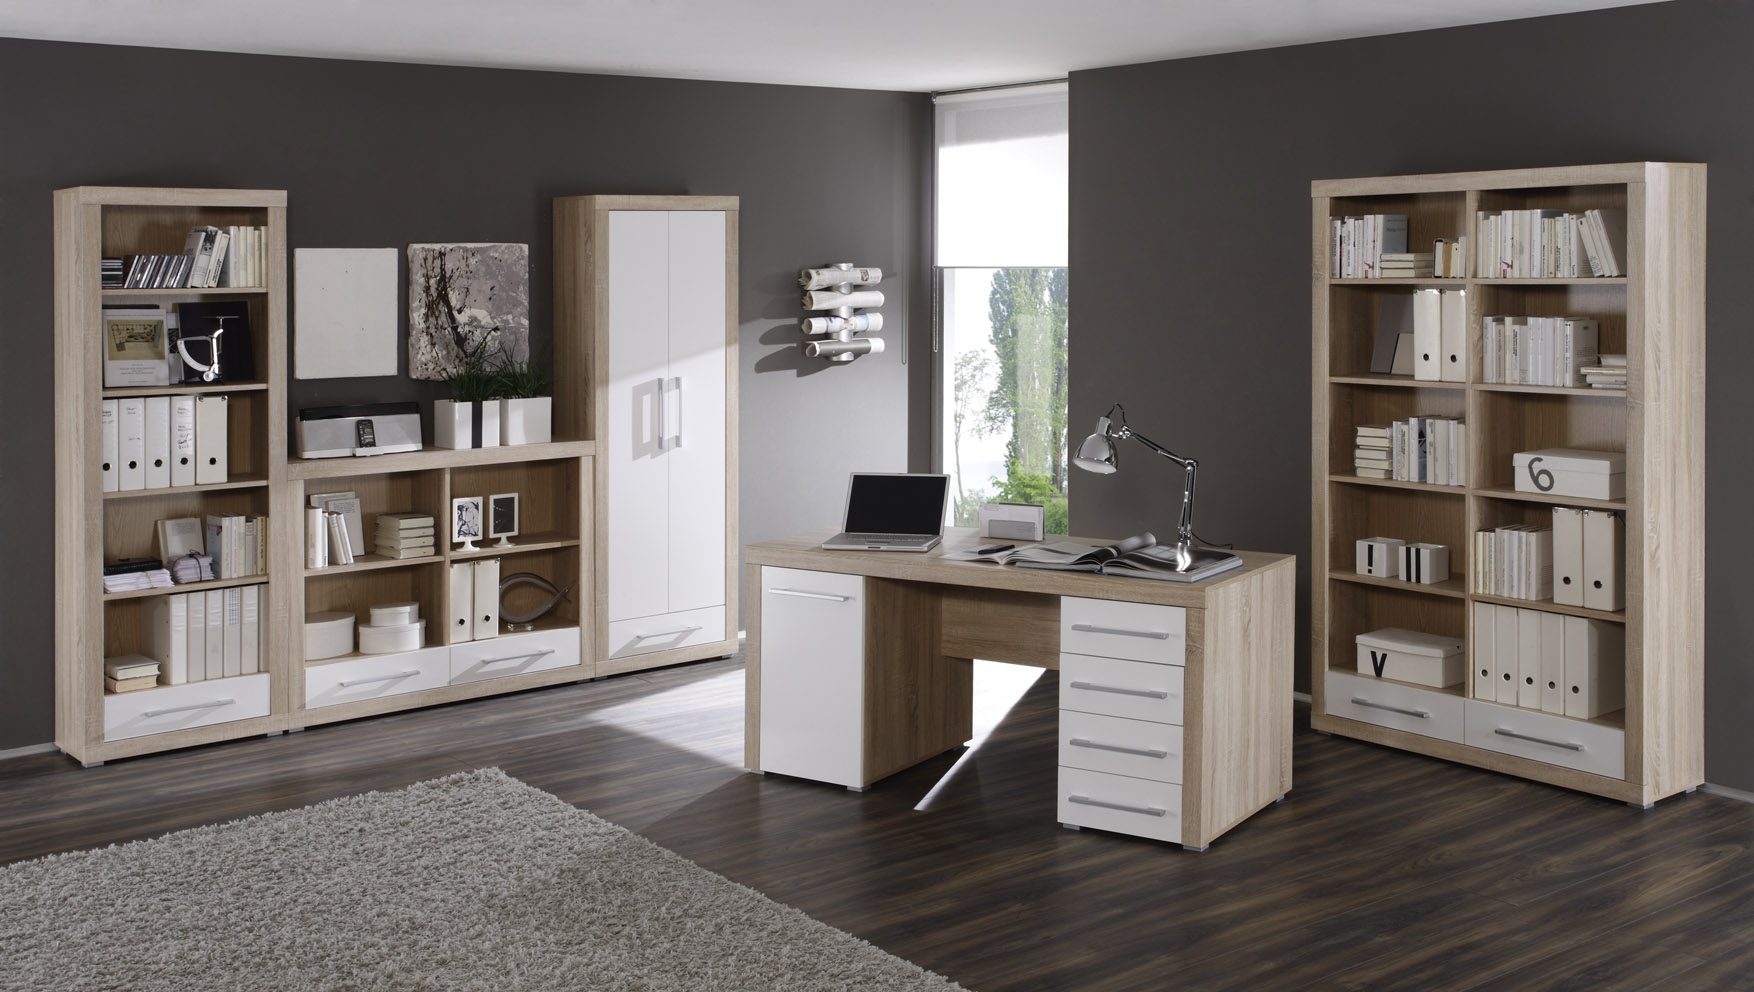 charlie aktenschrank 2 t rig sonoma eiche weiss. Black Bedroom Furniture Sets. Home Design Ideas